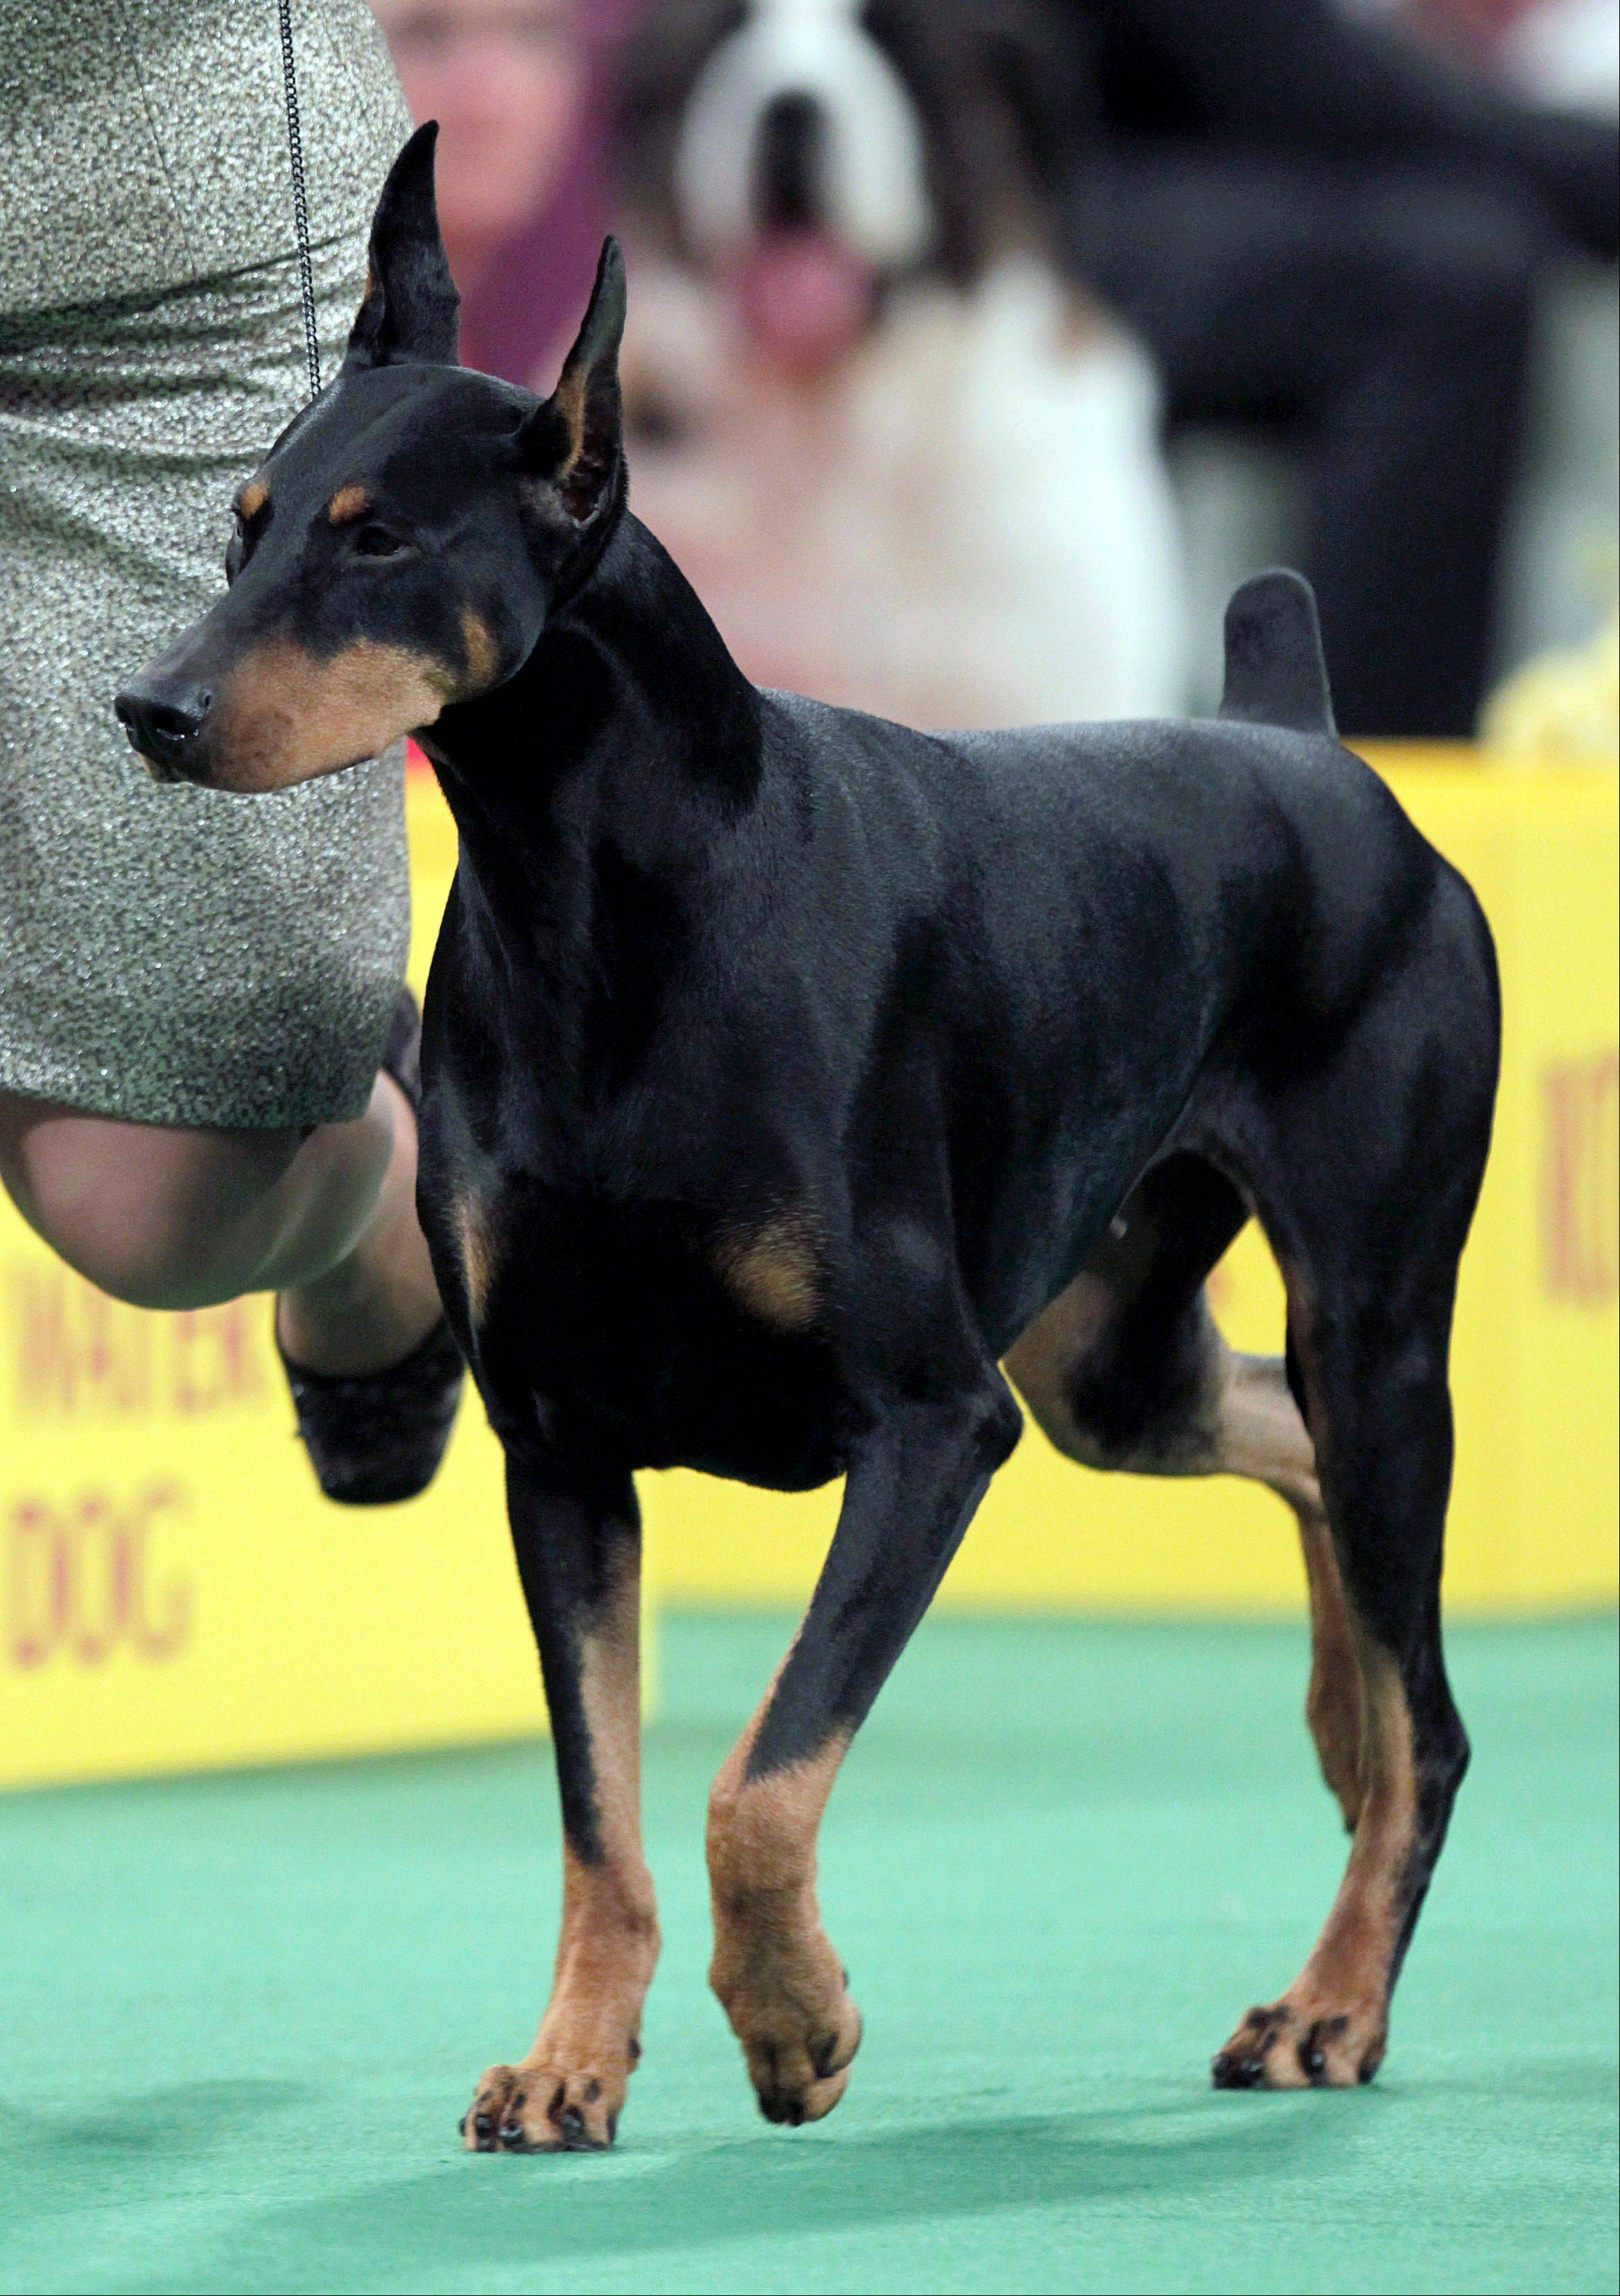 Protocol's Veni Vidi Vici, a Doberman pinscher, who won its group, runs Tuesday during the judging of the Working Group at the 136th annual Westminster Kennel Club dog show in New York.